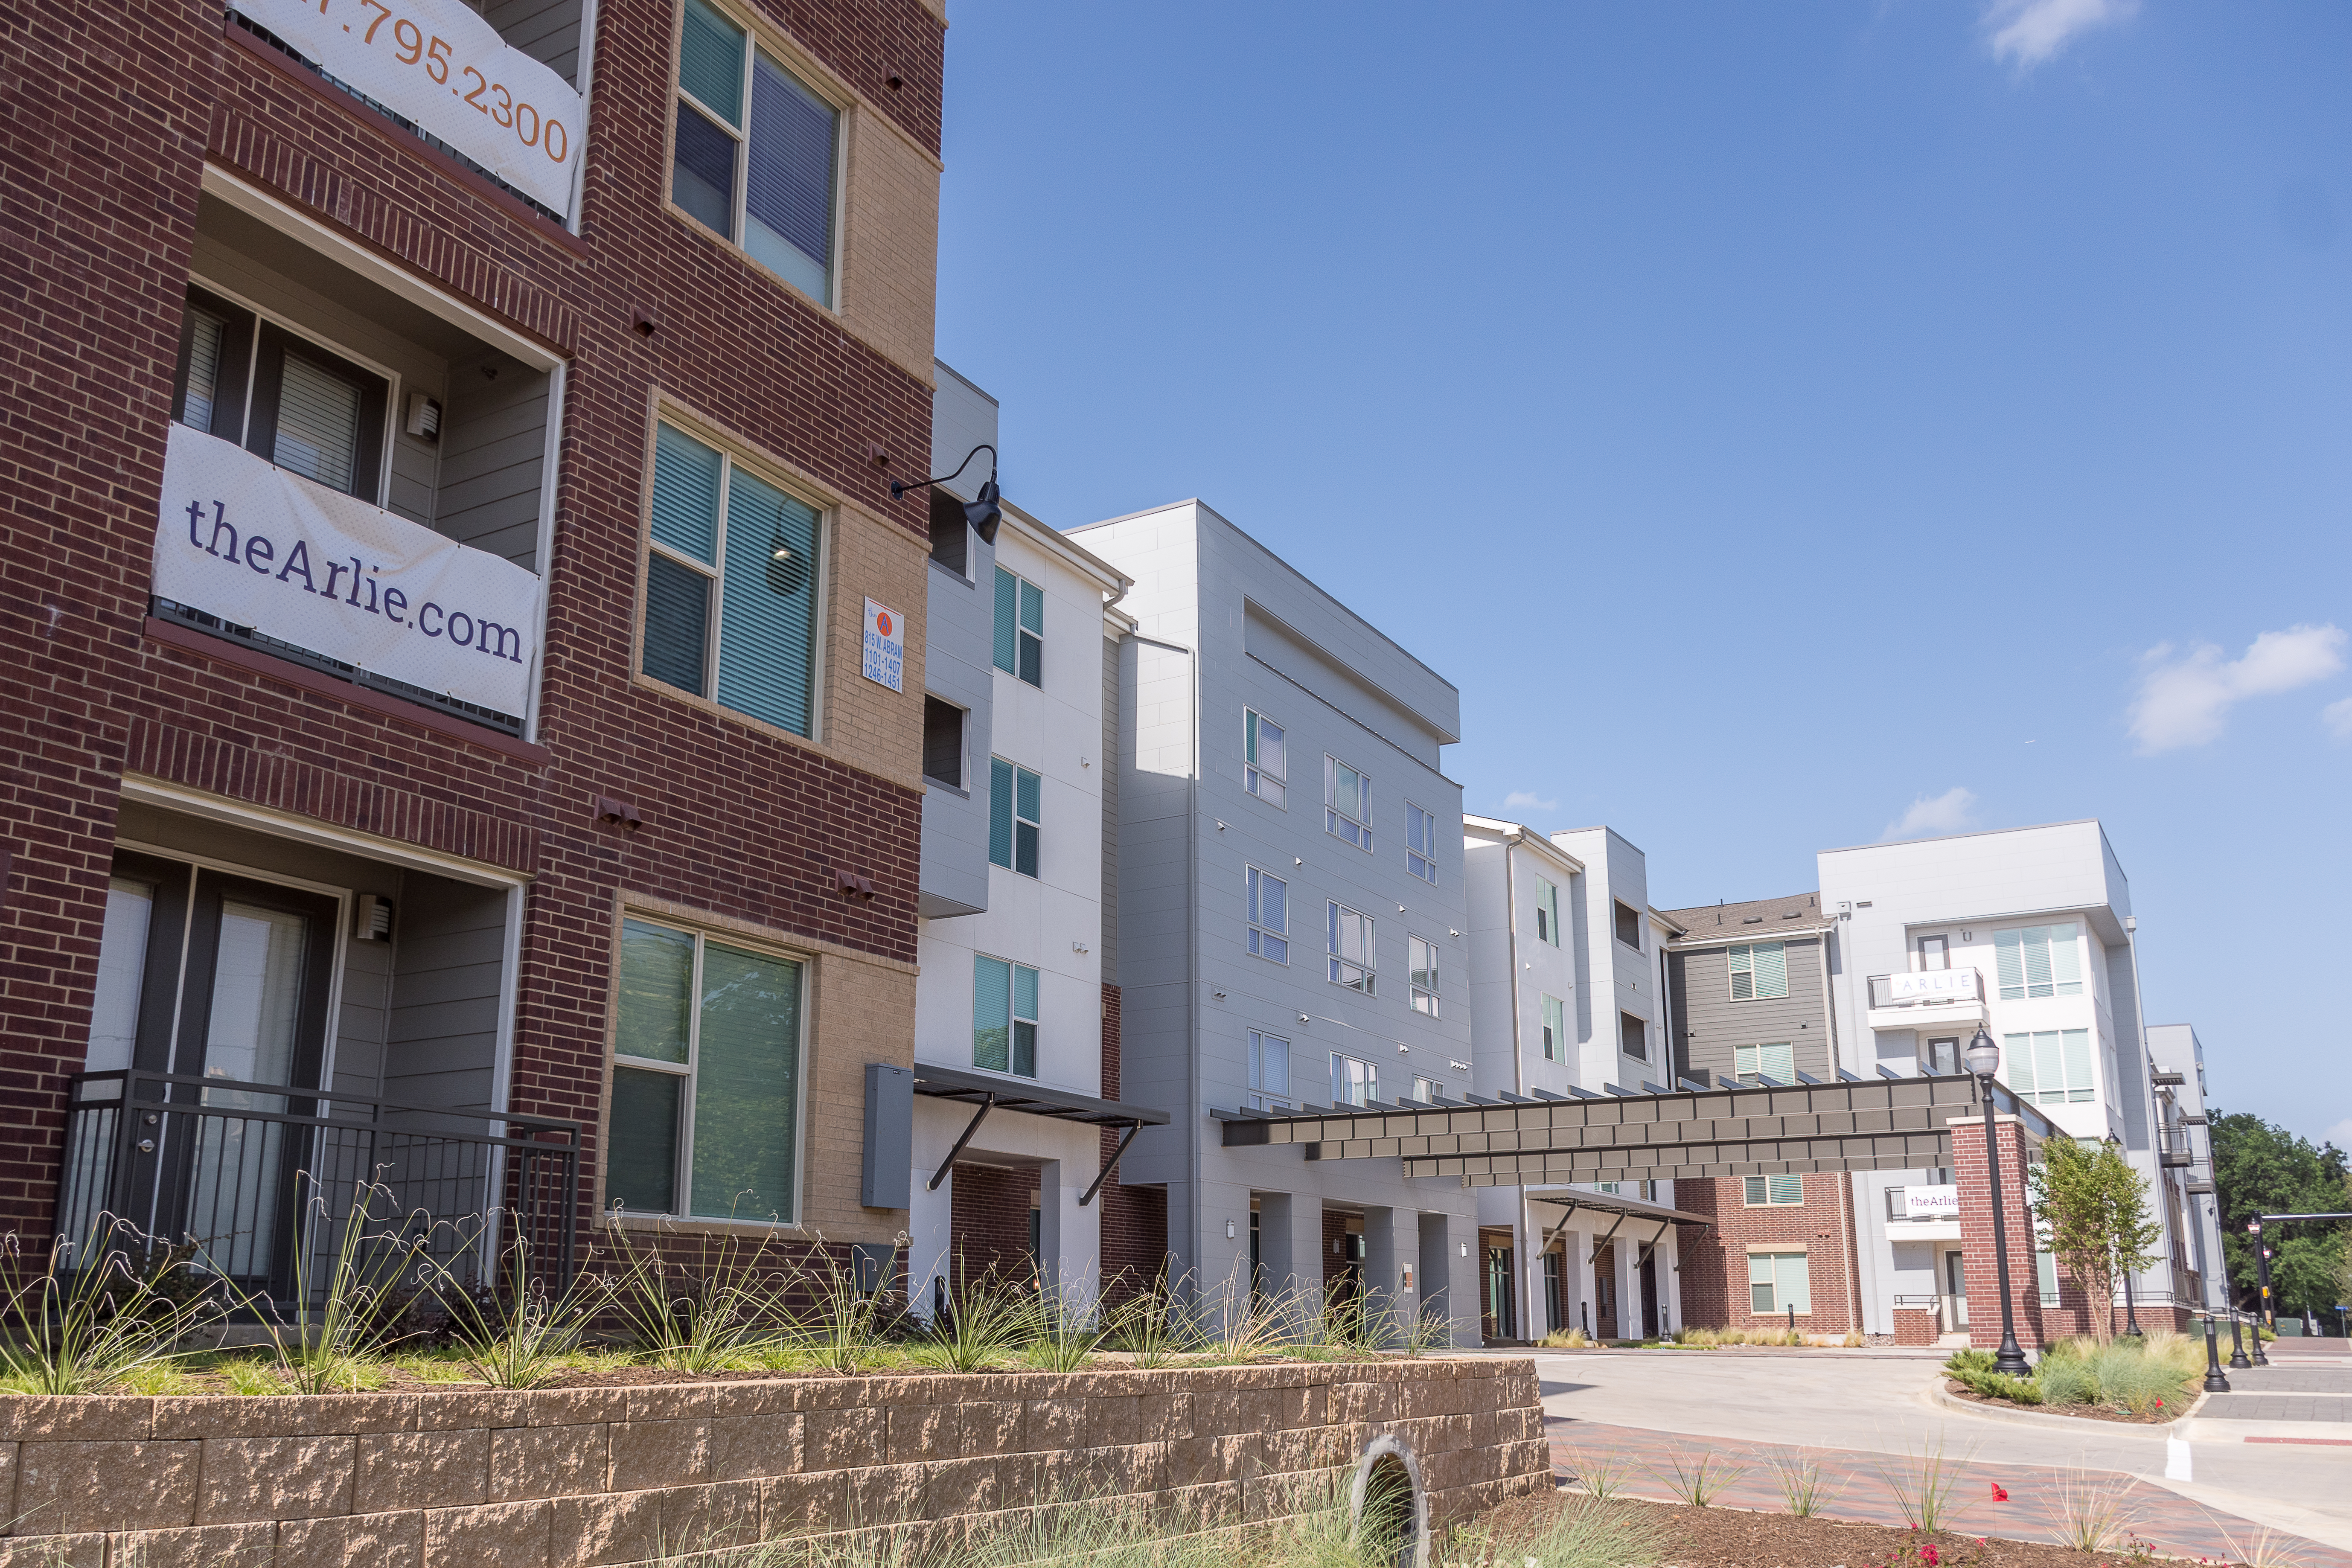 The Arli, a new purpose built student housing project with state-of-the-art amenities.